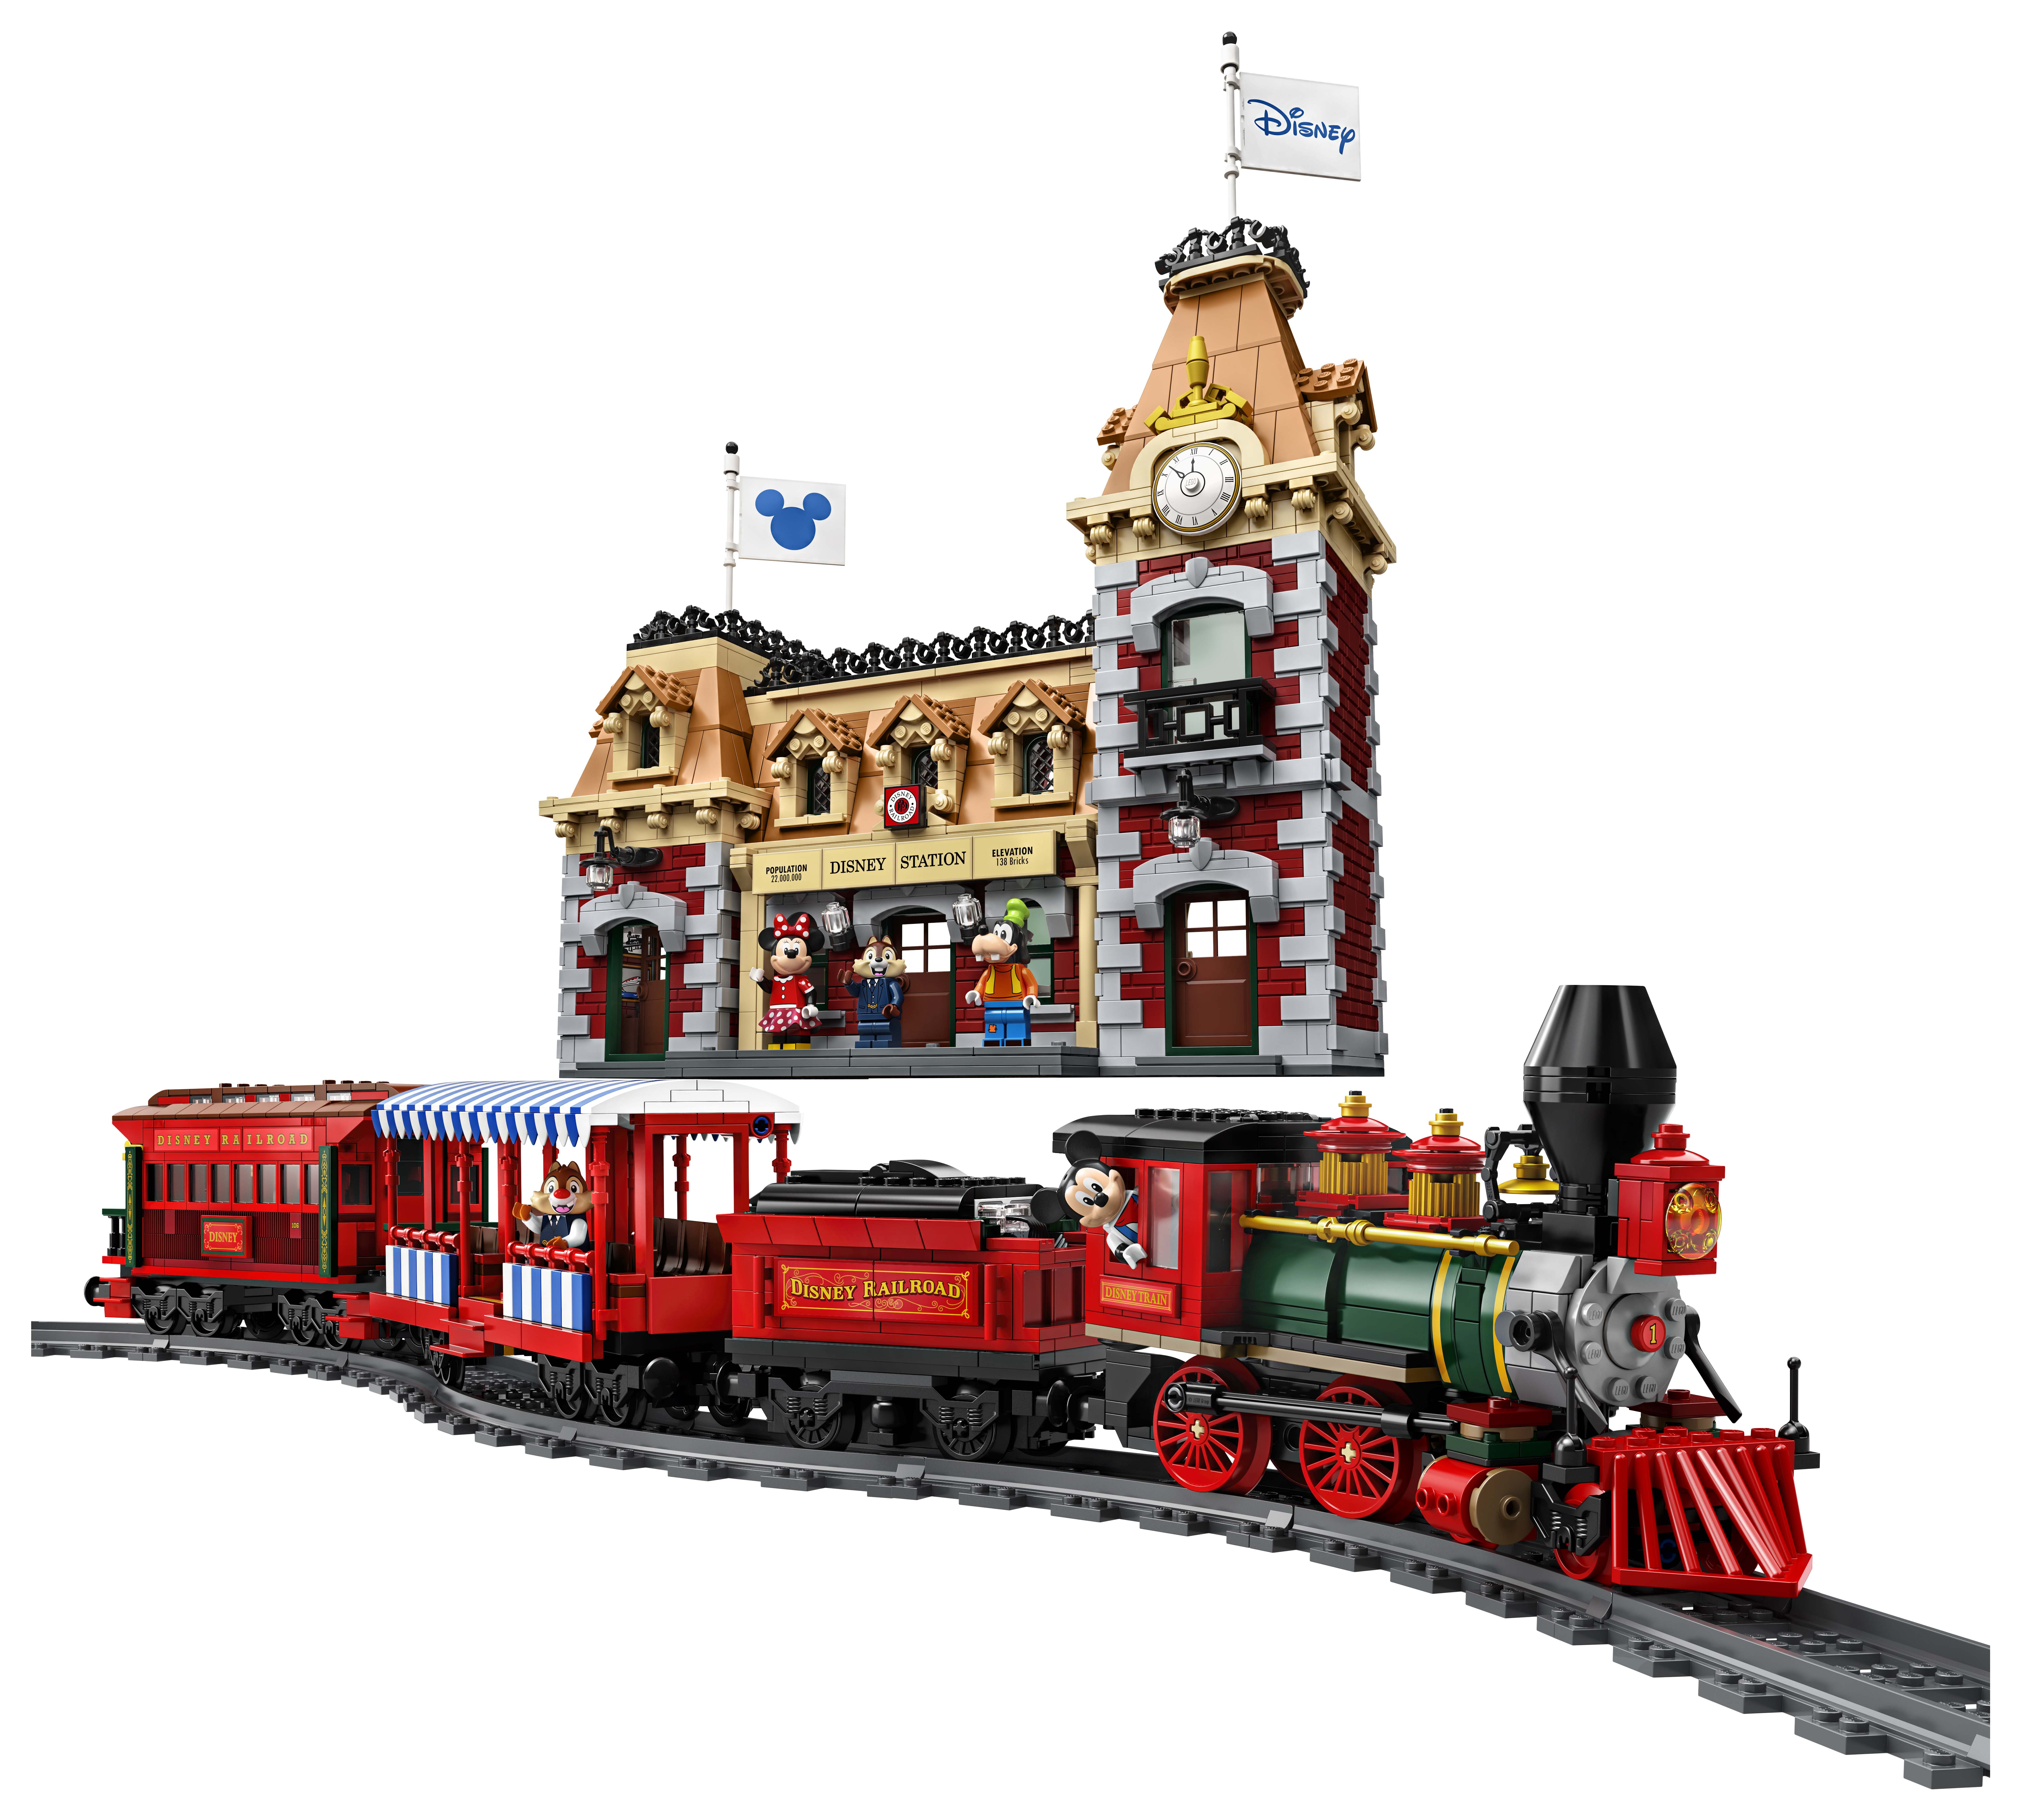 LEGO Disney Train and Station (71044) Officially Announced - The